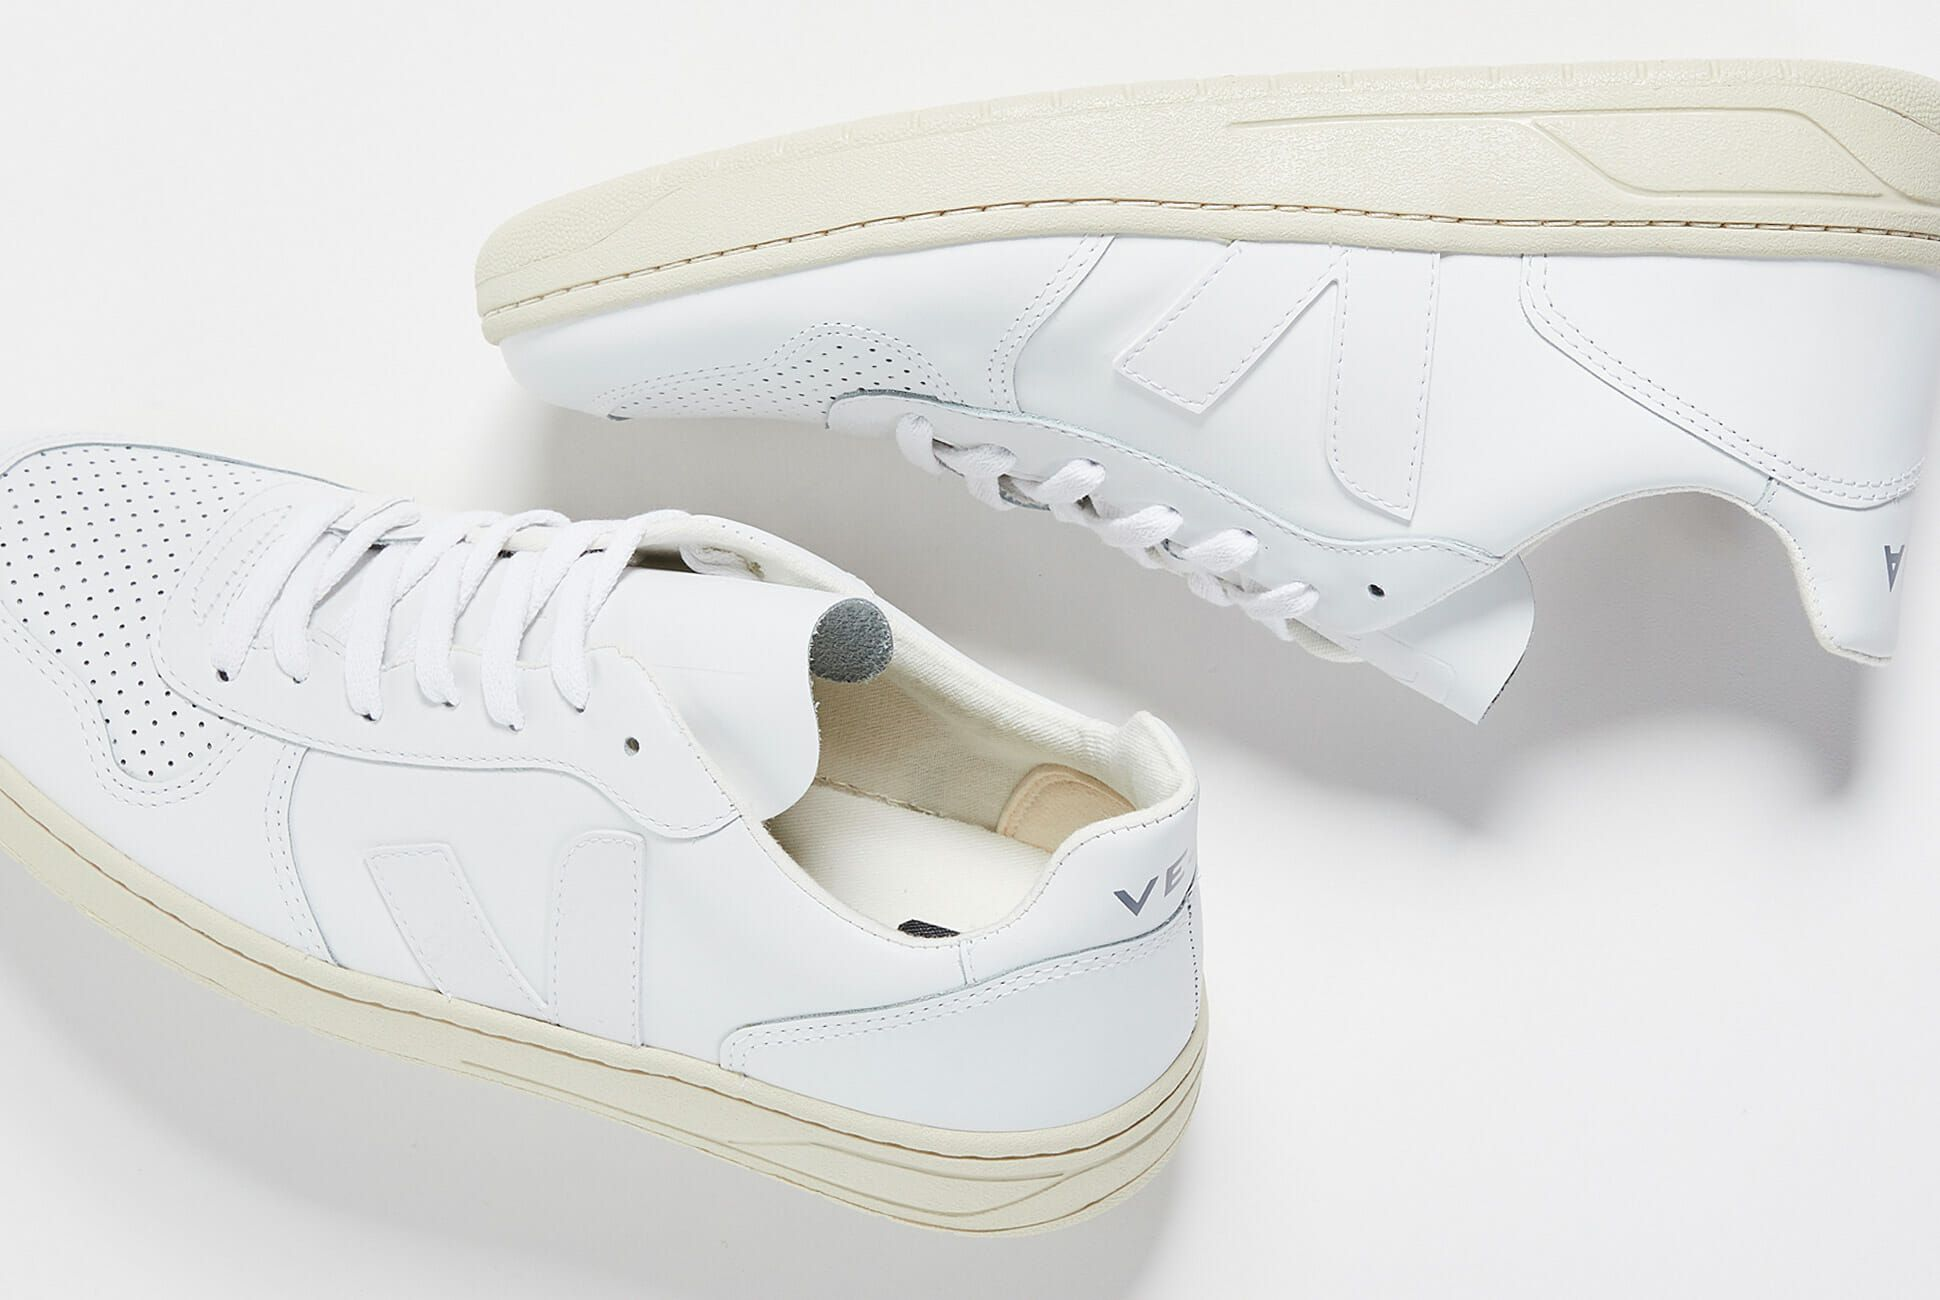 10 White Sneakers to Wear All Summer Long </p>                     </div> </div>          <!-- tab-area-end --> </div> <!--bof also purchased products module-->  <!--eof also purchased products module--> <!--bof also related products module--> <!--eof also related products module--> <!--bof Prev/Next bottom position -->         <!--eof Prev/Next bottom position --> <!--bof Form close--> </form> <!--bof Form close--> </div> <div style=